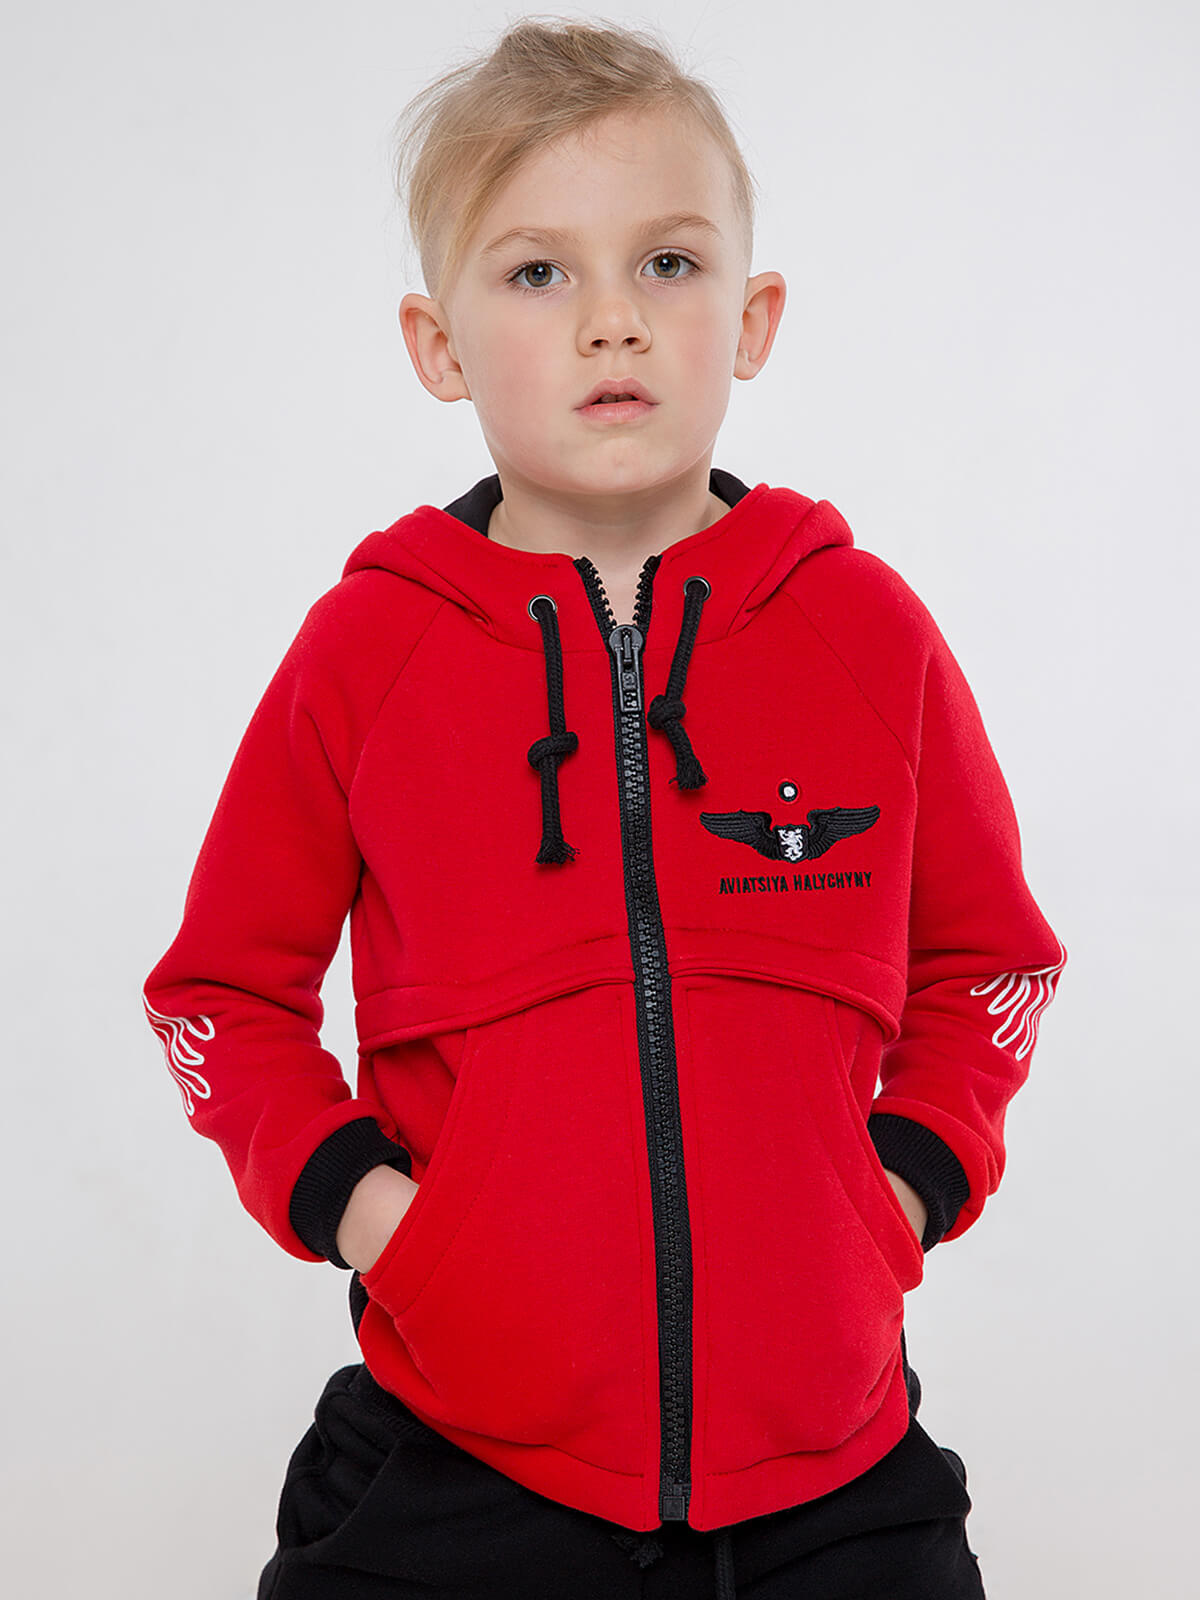 Kids Hoodie Stork. Color red.  Technique of prints applied: silkscreen printing.